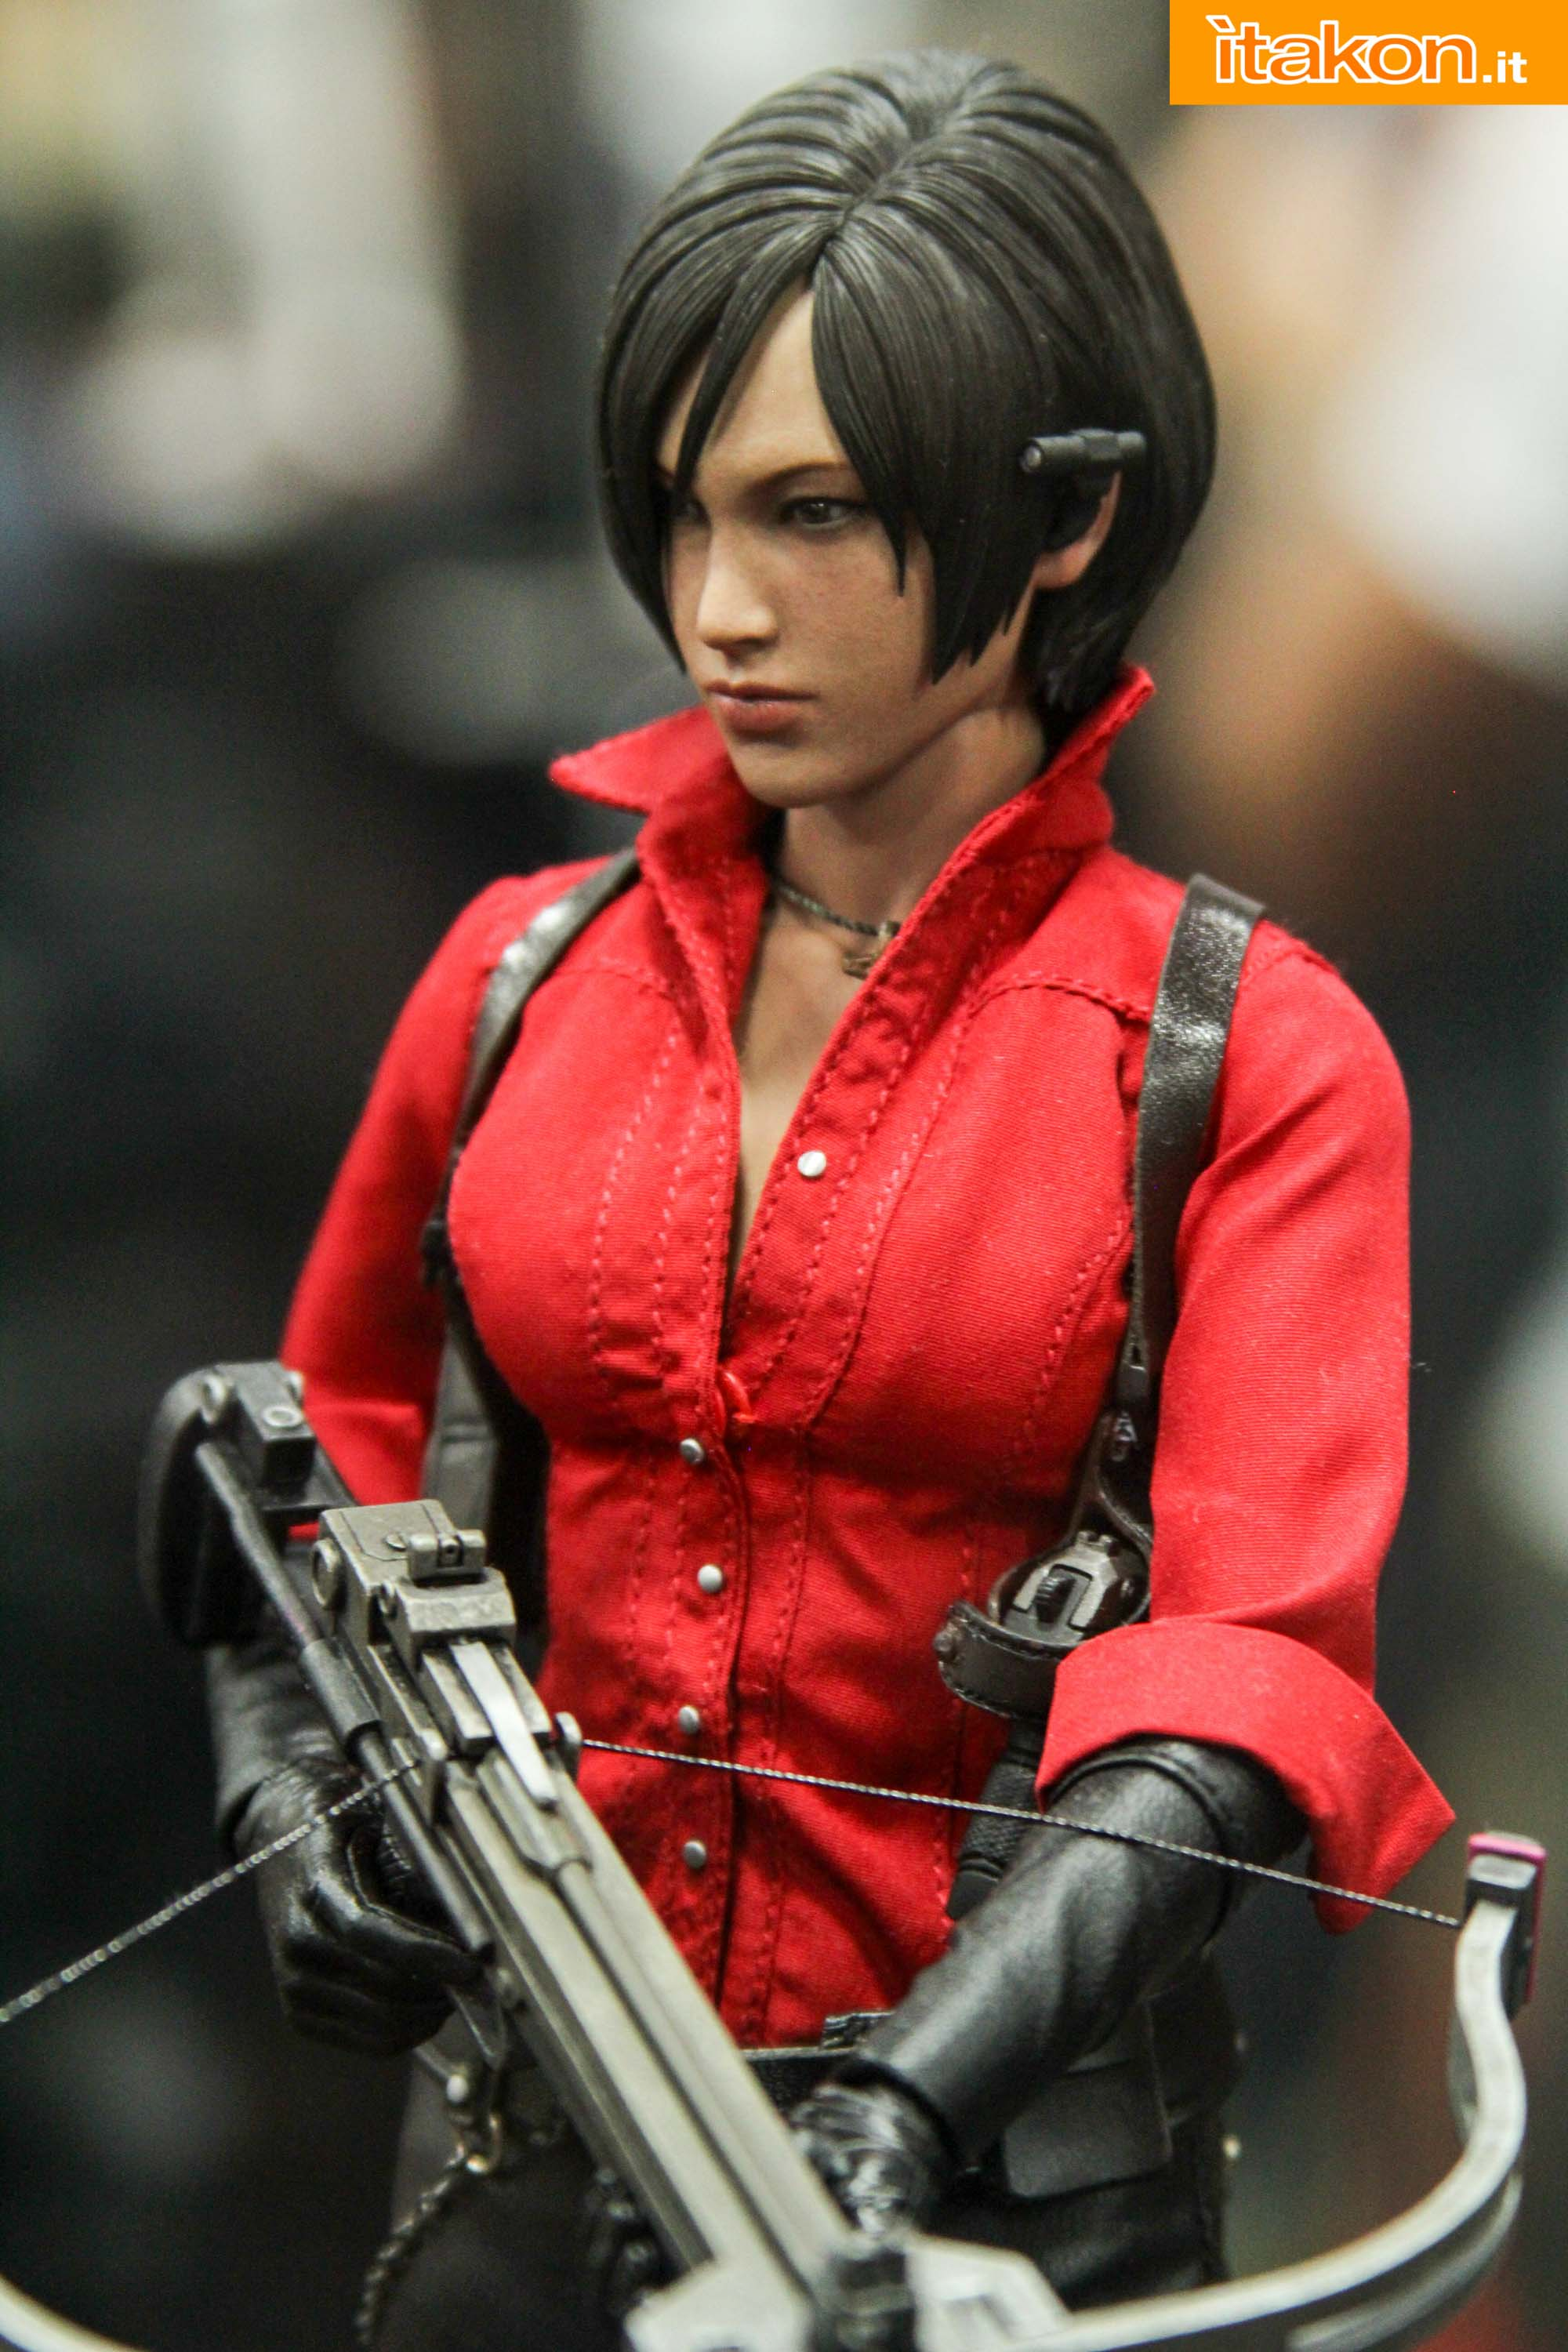 http://i2.wp.com/itakon.it/wp-content/uploads/2015/07/hot-toys-resident-evil-metal-gear-sdcc-2015-17.jpg